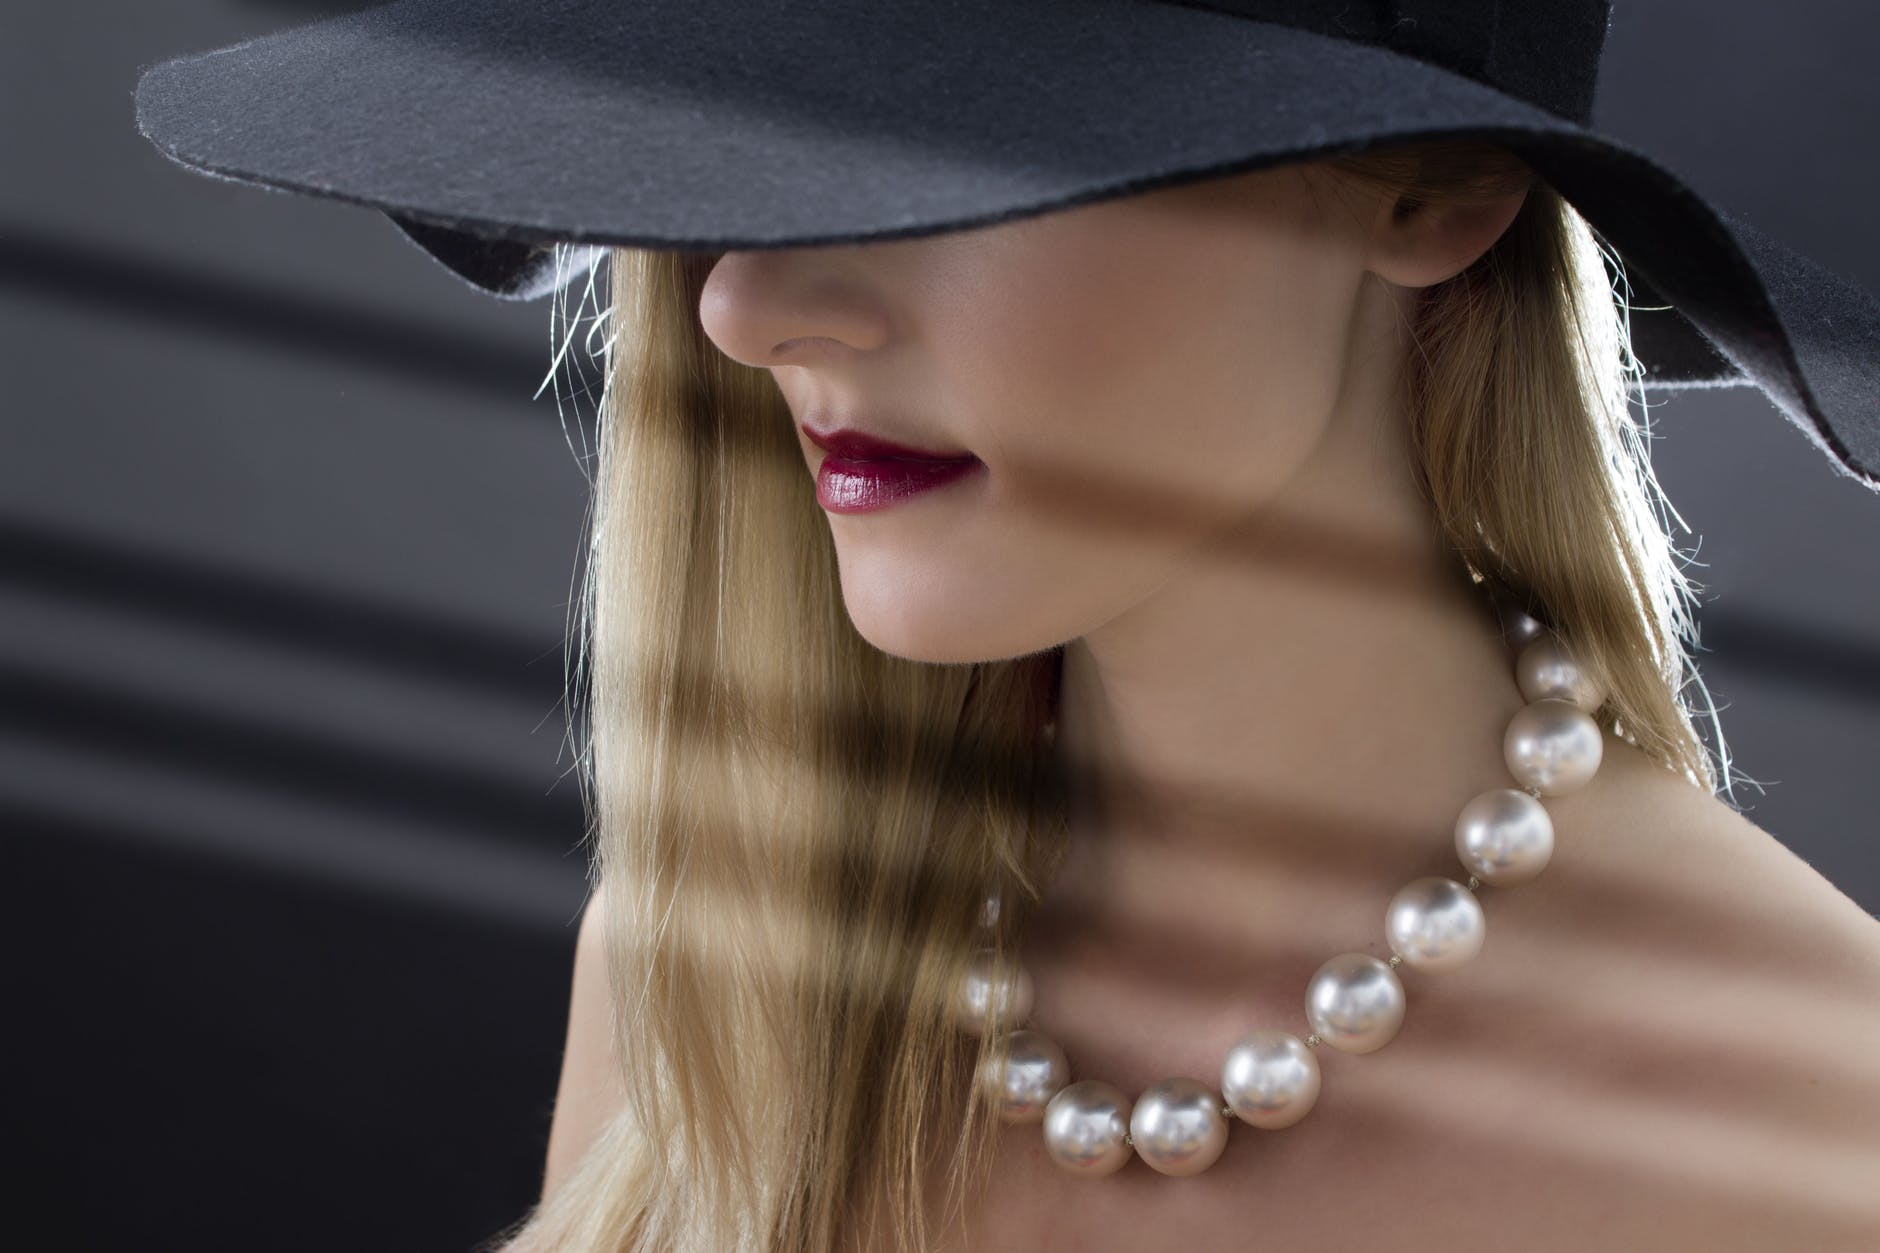 This picture of a young woman with stunning pearls illustrates how I feel as an adopted person. I didn't have my pearls early in life, but gained them with every passing decade. I hope they now are like a steady hand in the world of adoption.